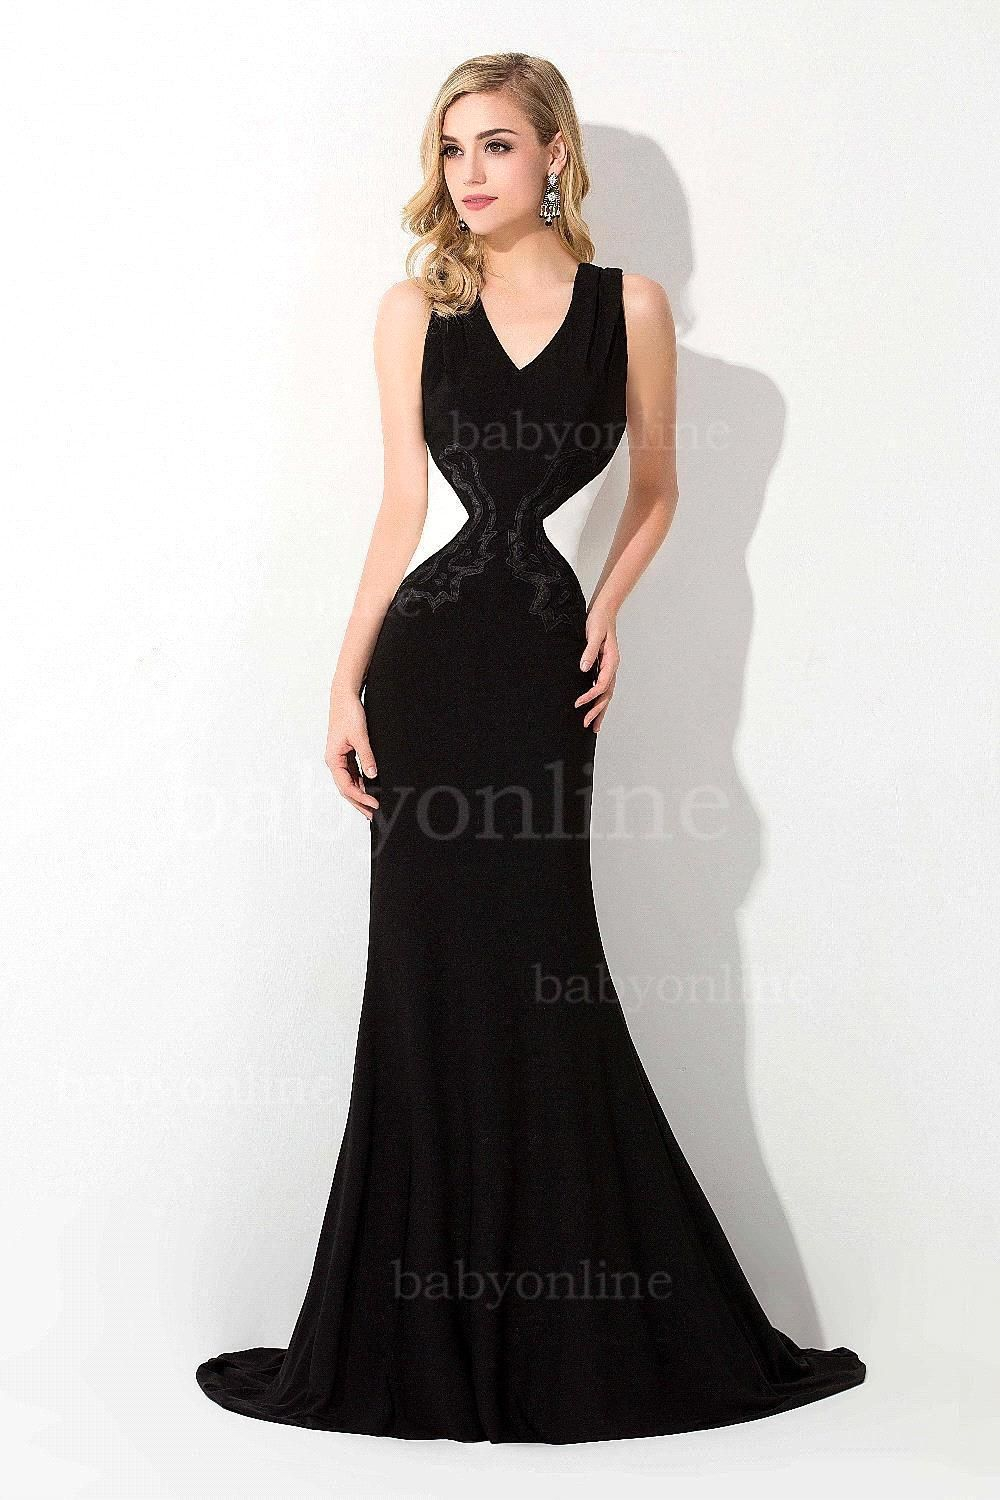 f922b0725eacc Formal Black And White Evening Gowns Backless Mermaid Evening Dress 2015  Elegant Long Prom Dress Vestido